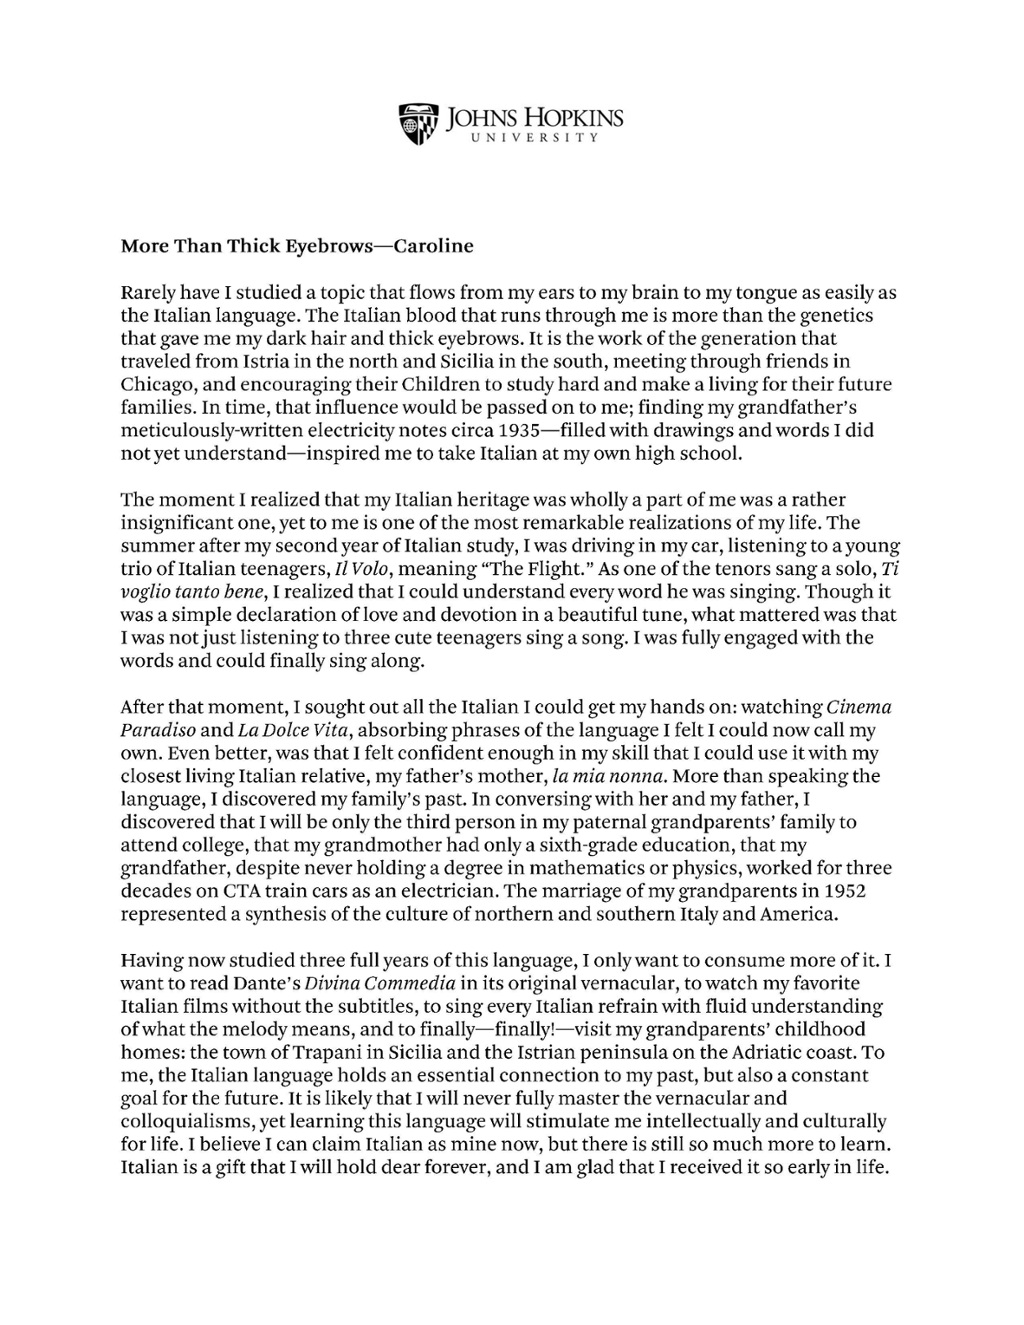 College admission essay why this college